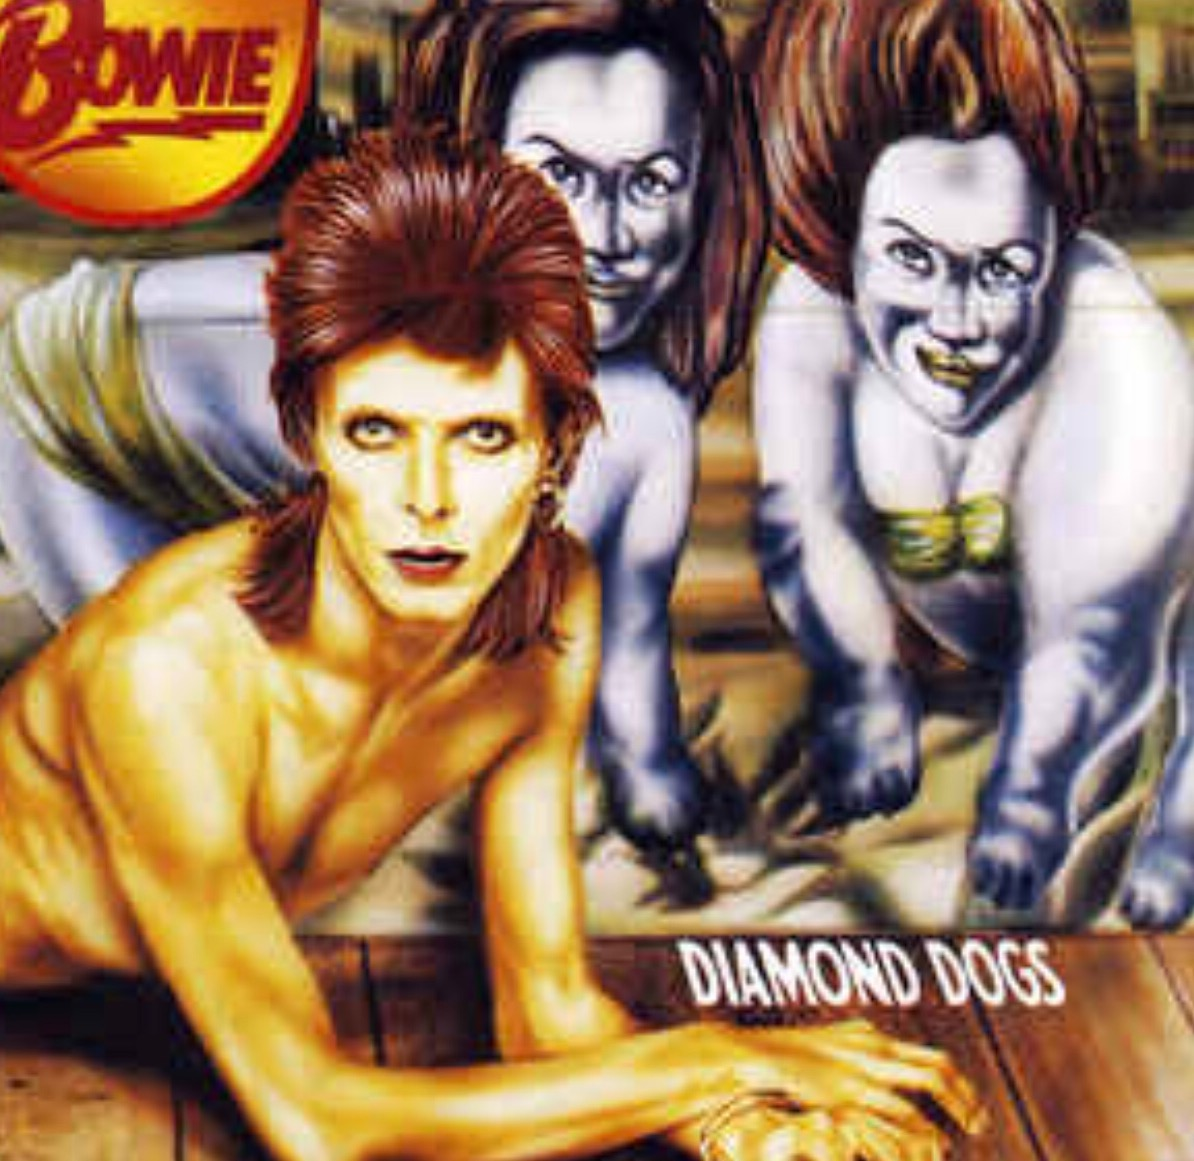 Diamond Dogs album cover.JPG